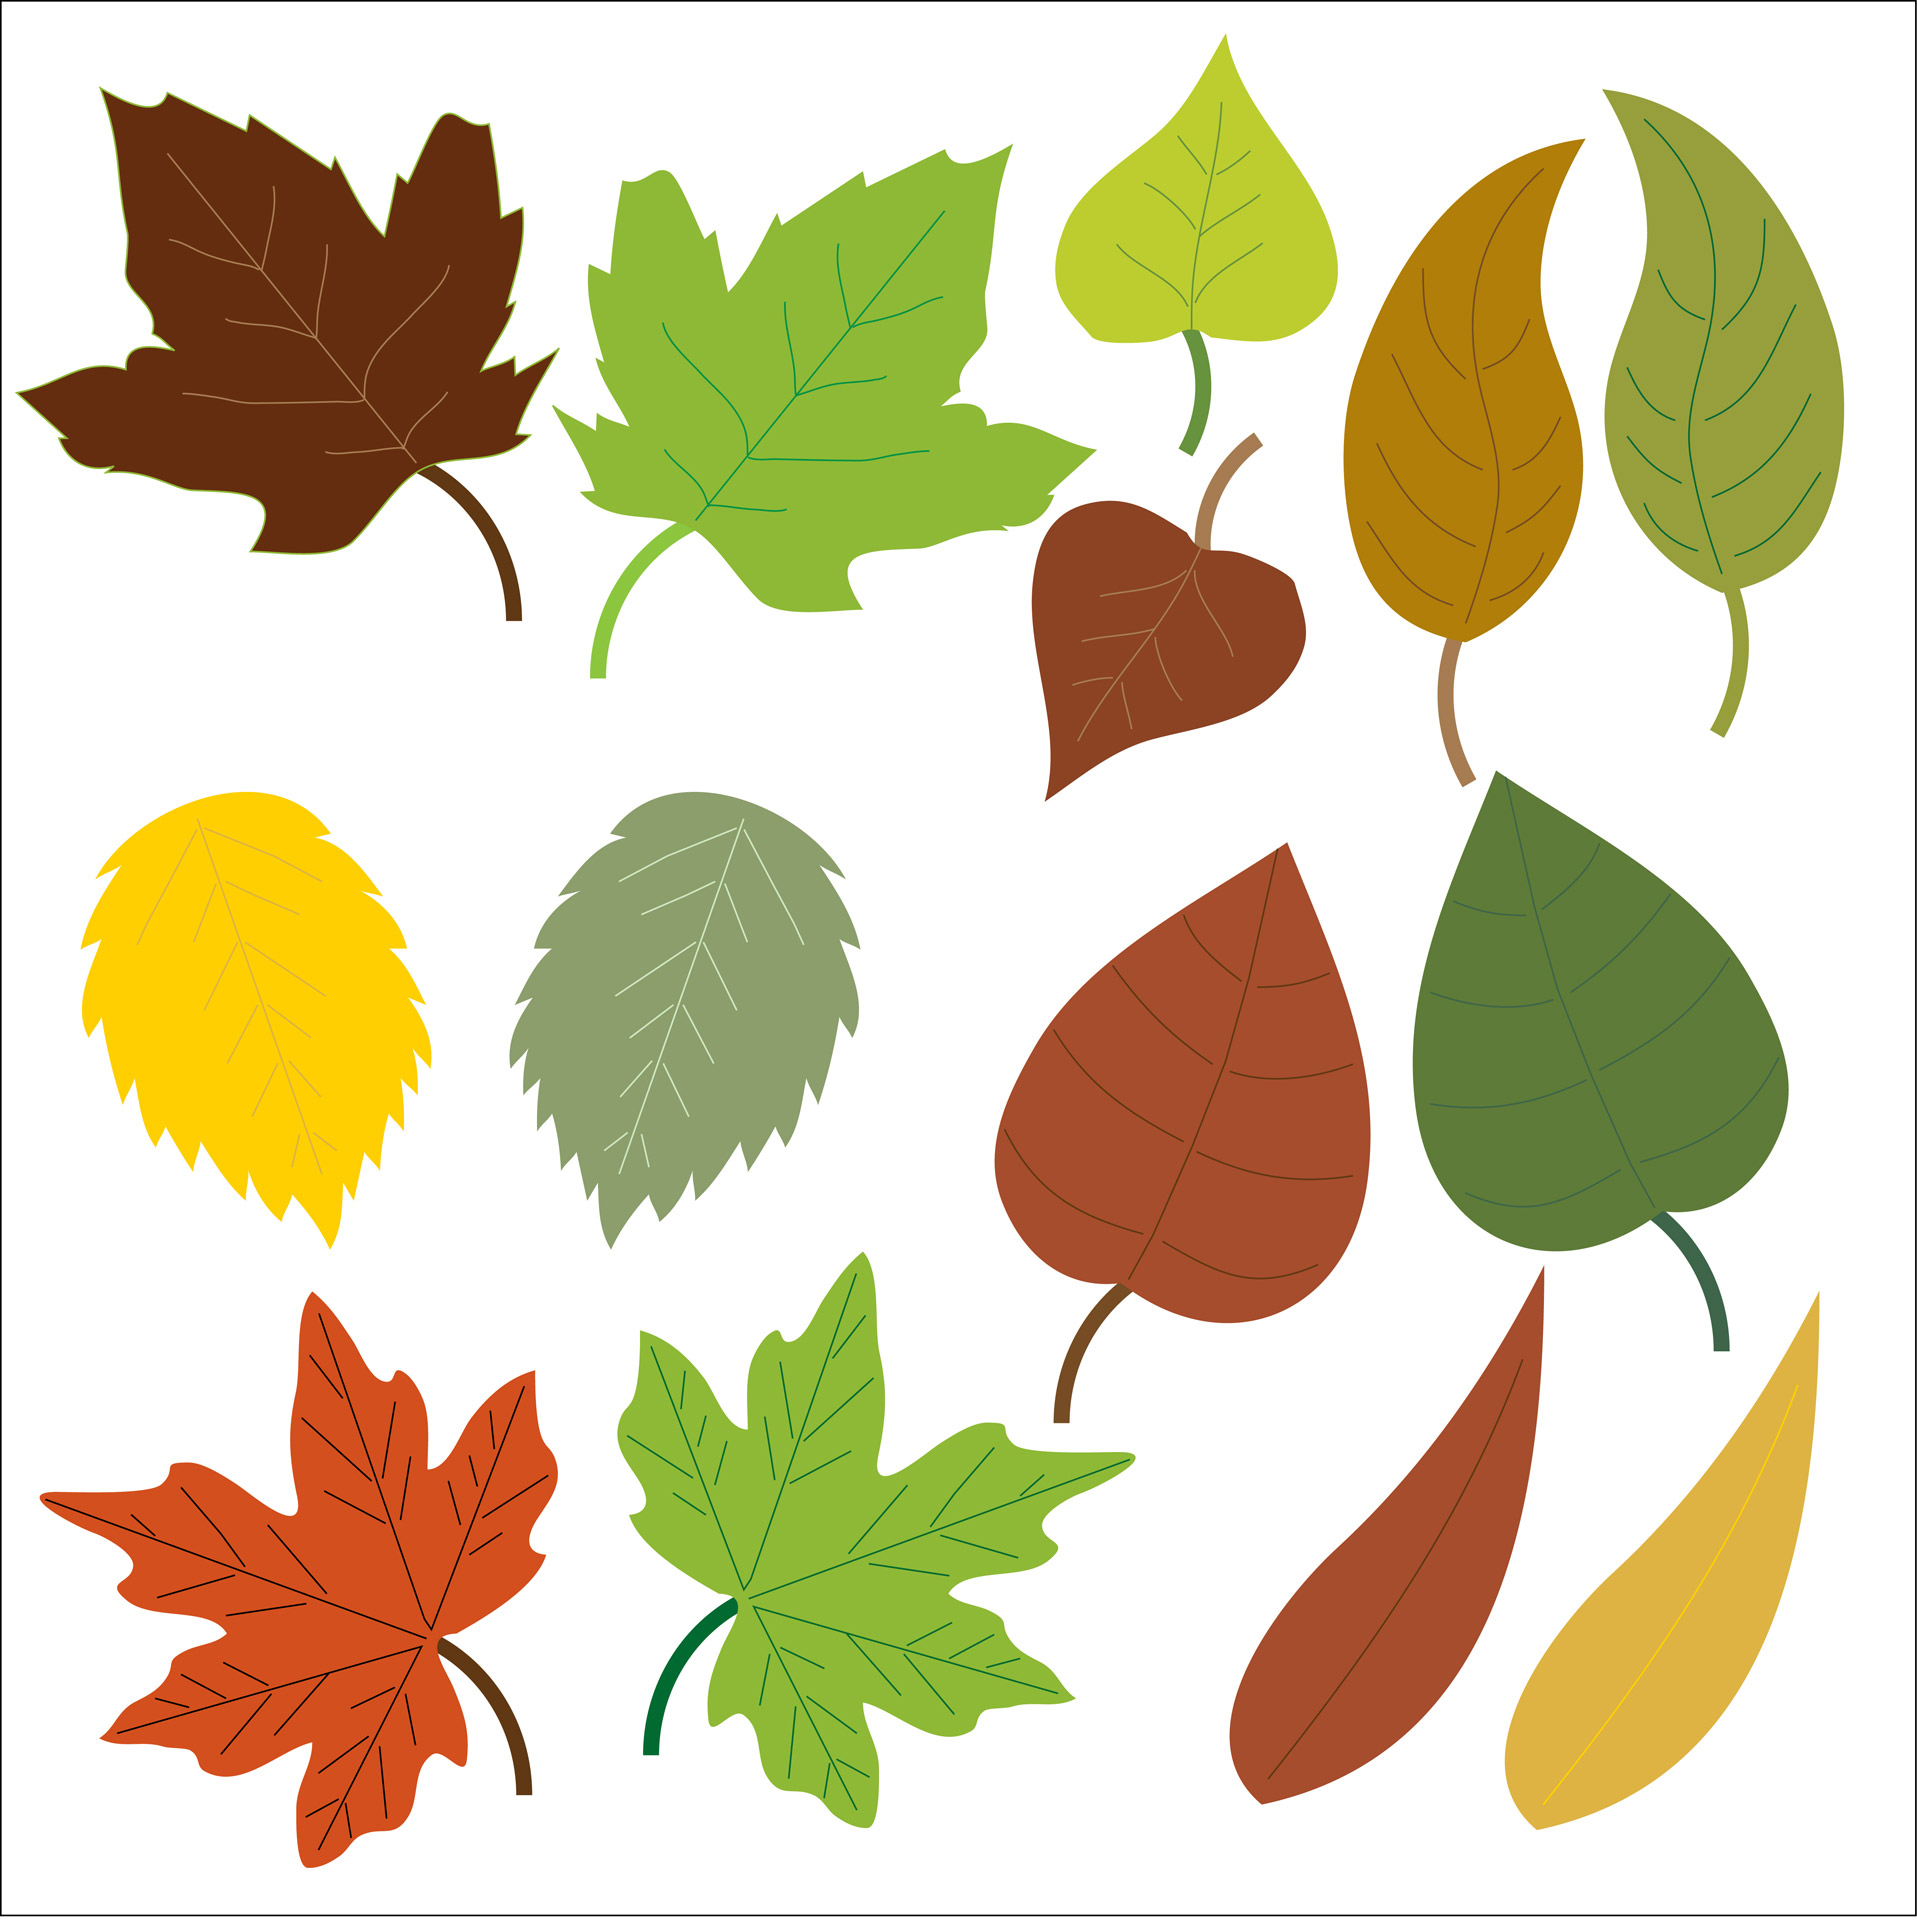 Leaf clipart. Leaves free stock photo